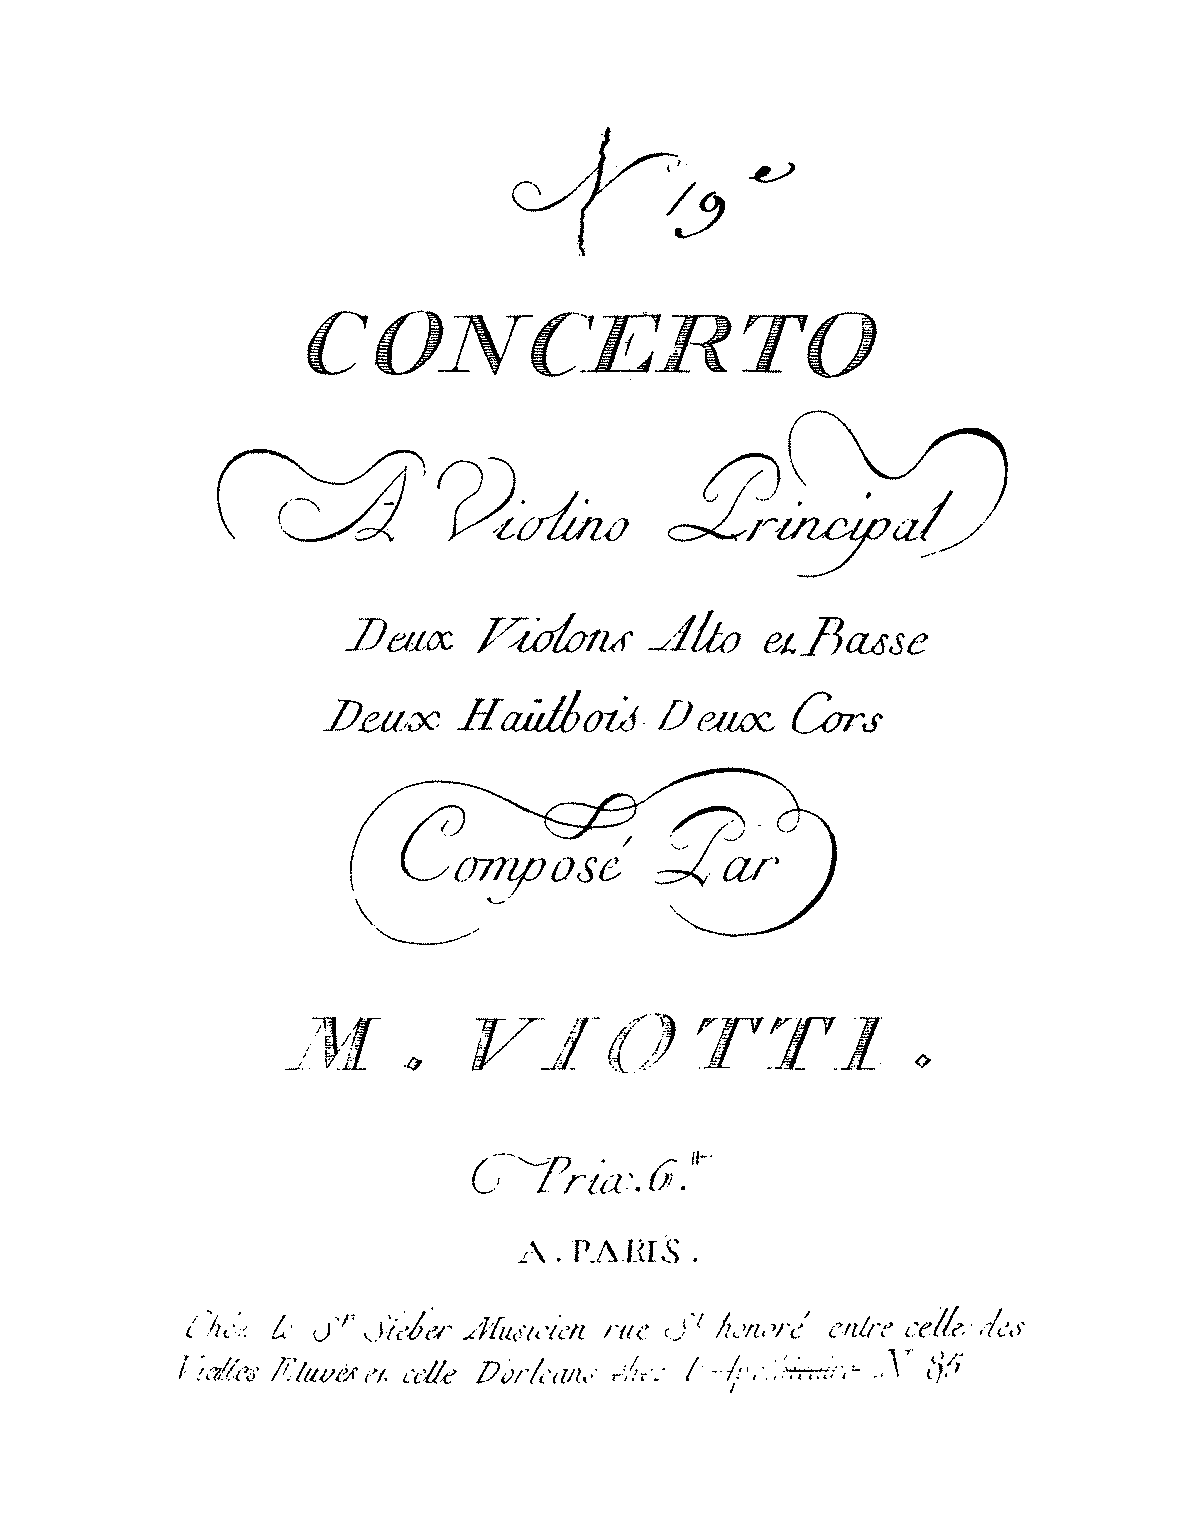 PMLP83180-GBViotti Violin Concerto No.19 orchparts firstedition.pdf